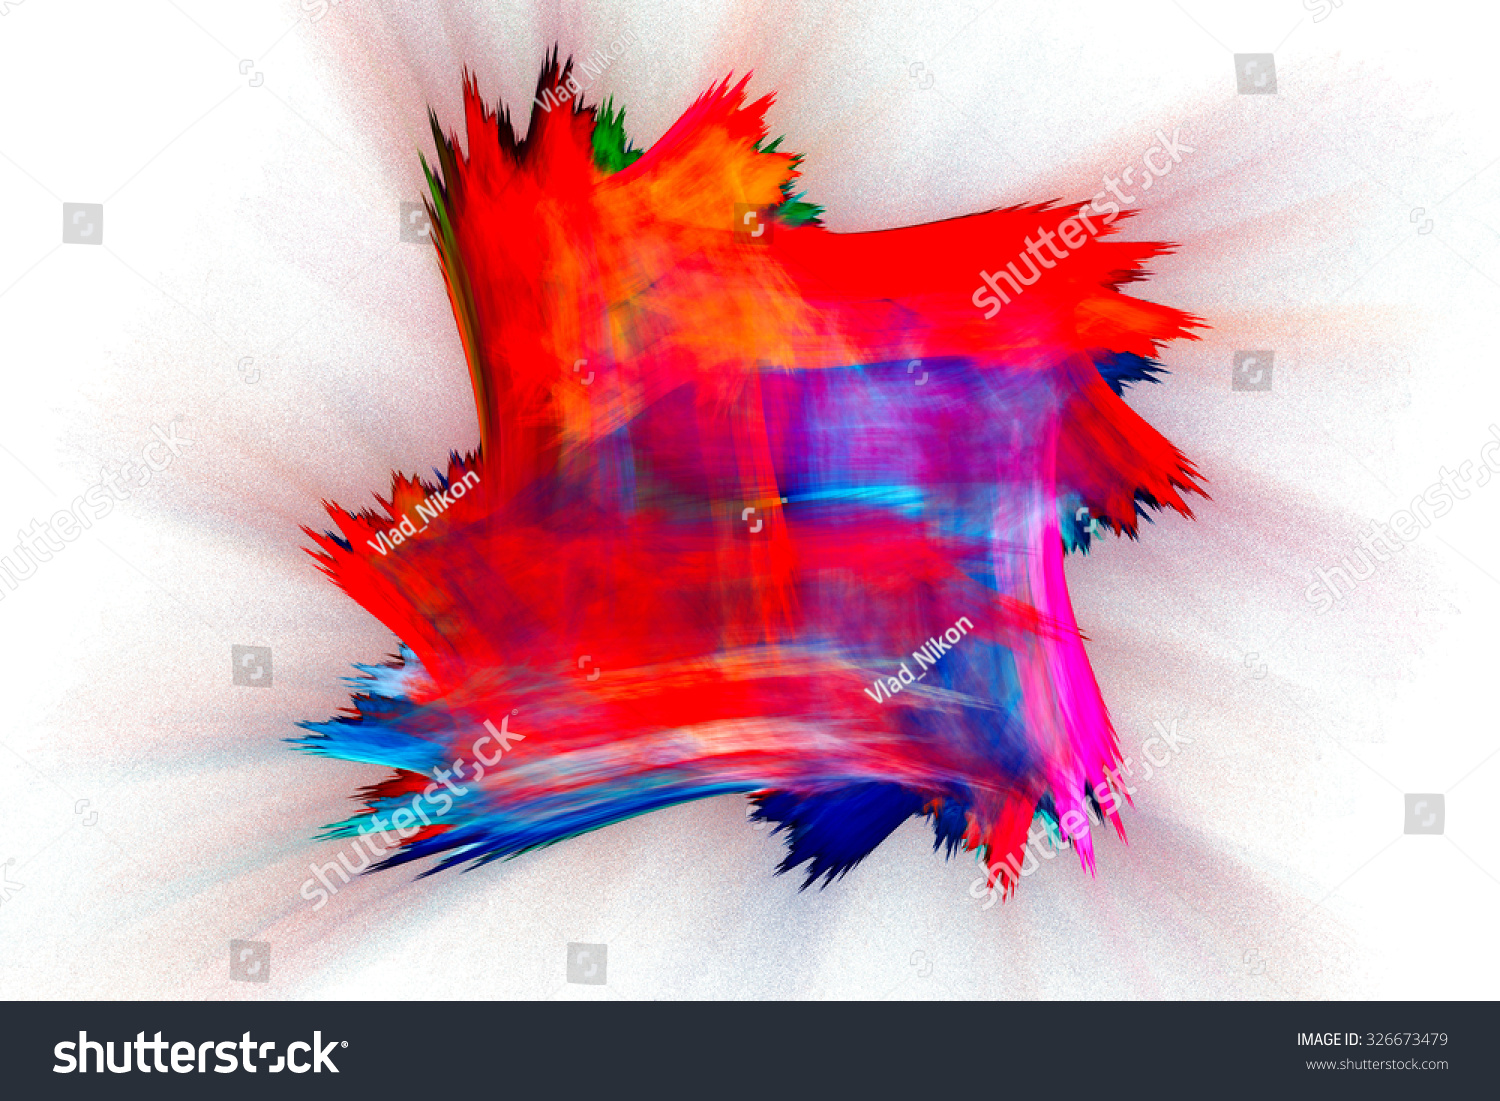 Multicolored Patch Cloth Figure Brush Fractal Stock Illustration